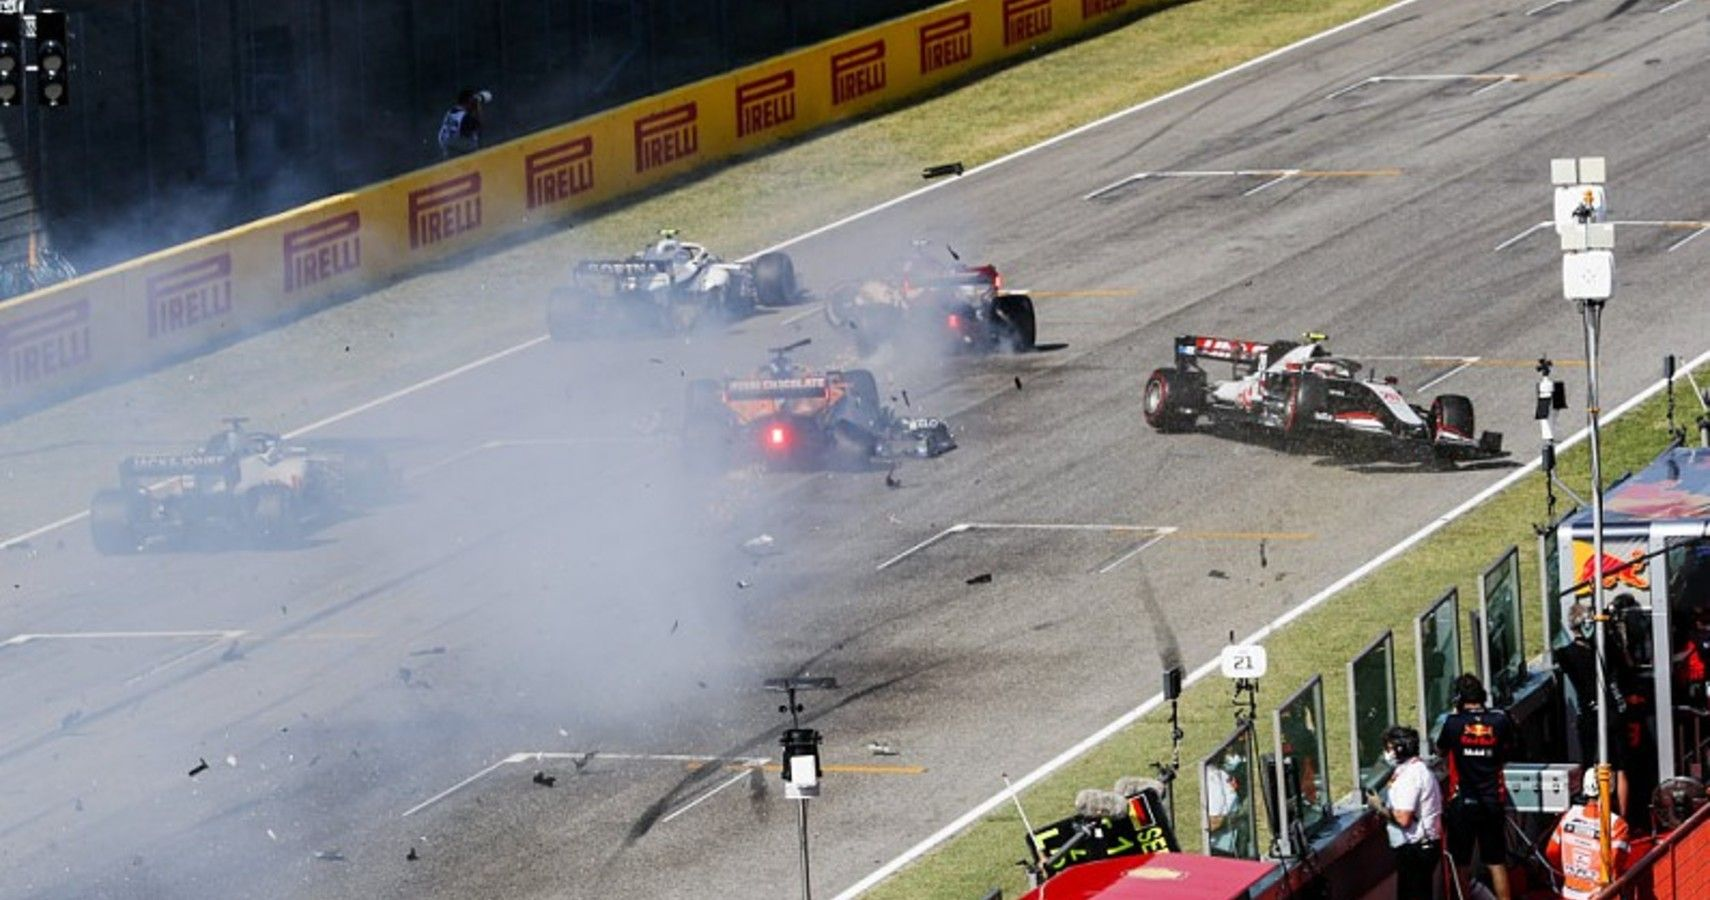 F1 Tuscan Grand Prix: Spectacular Crashes, Red Flags and Mercedes Domination